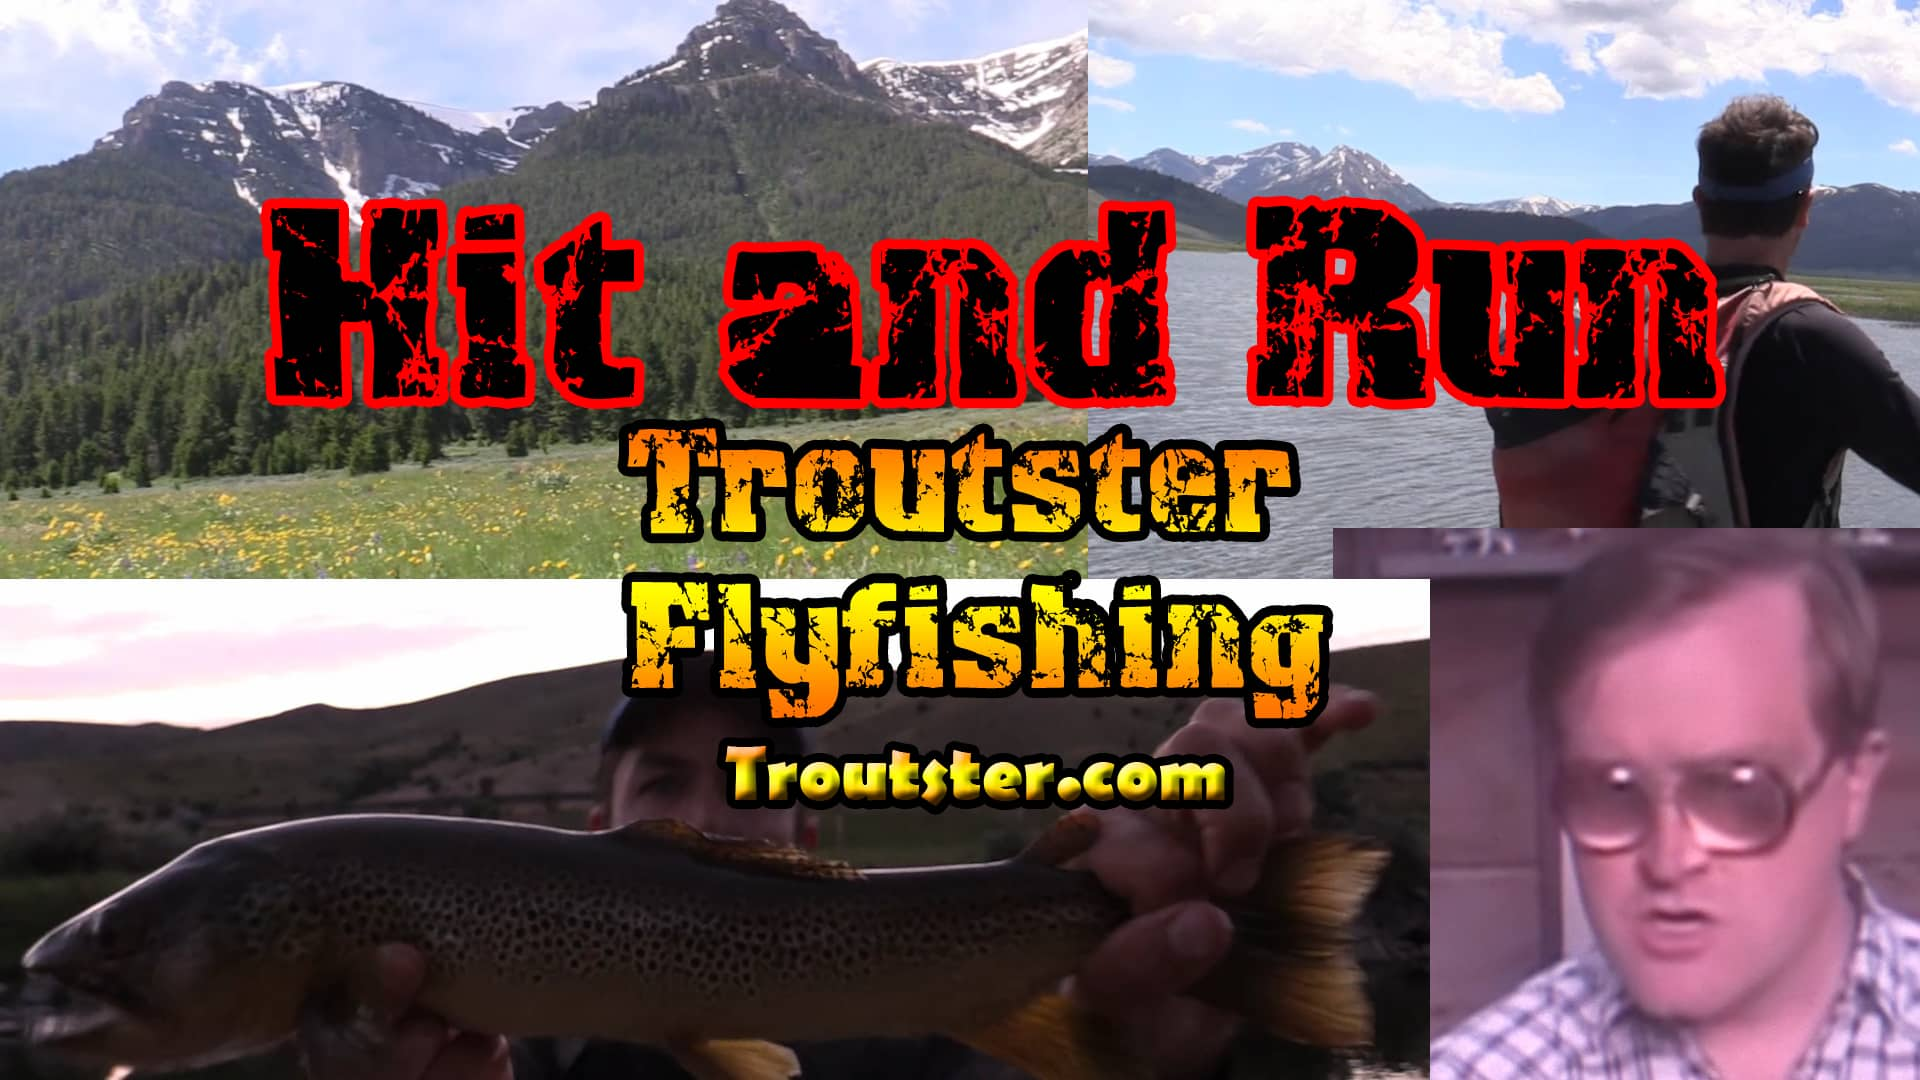 Fly fishing in Montana - Great trout fishing in the rockies